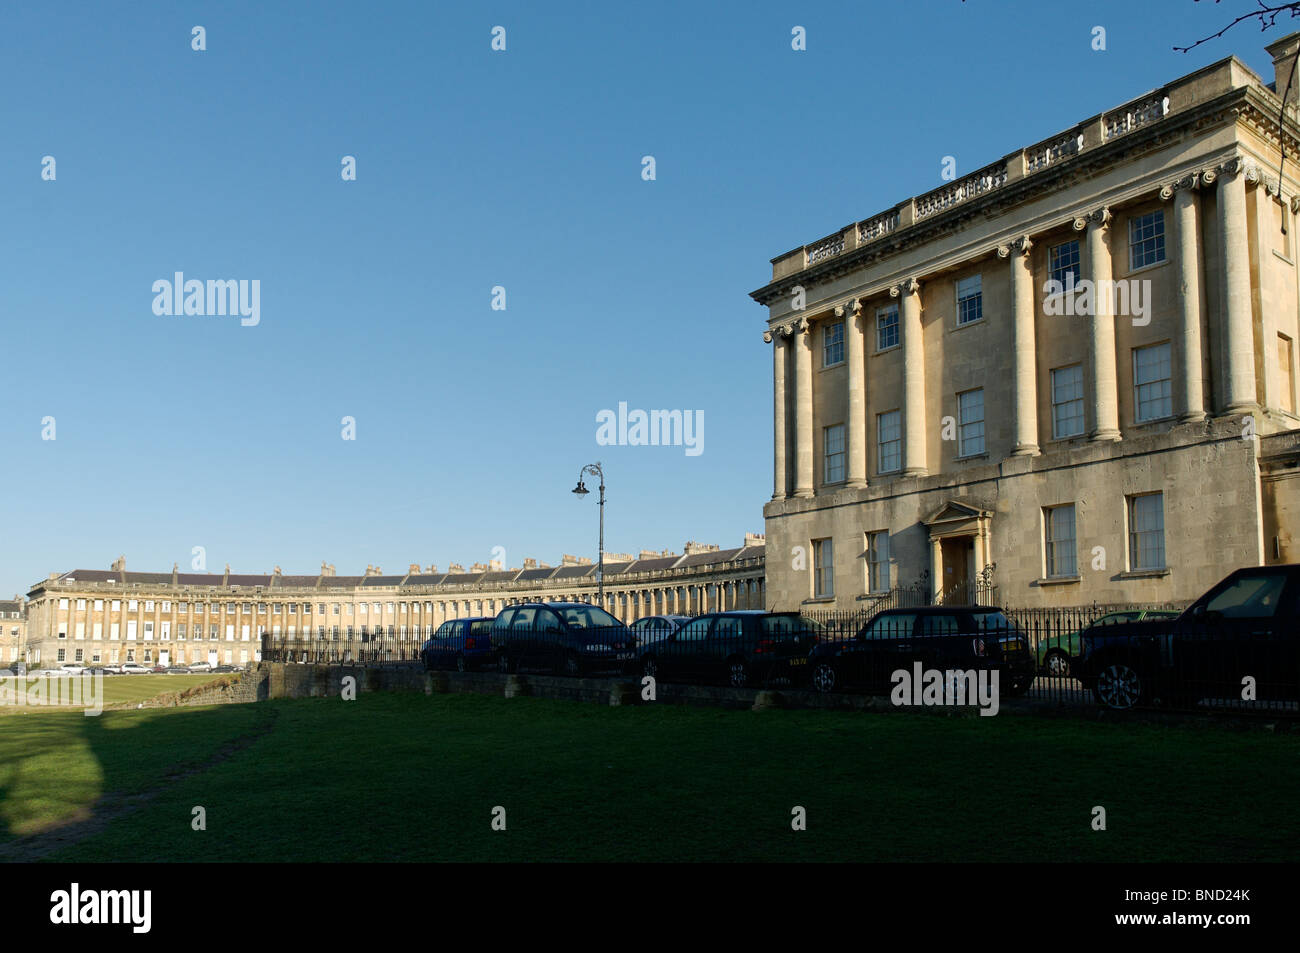 Classically inspired columned Royal crescent in Bath in the morning with a blue sky and cars parked along the street. - Stock Image